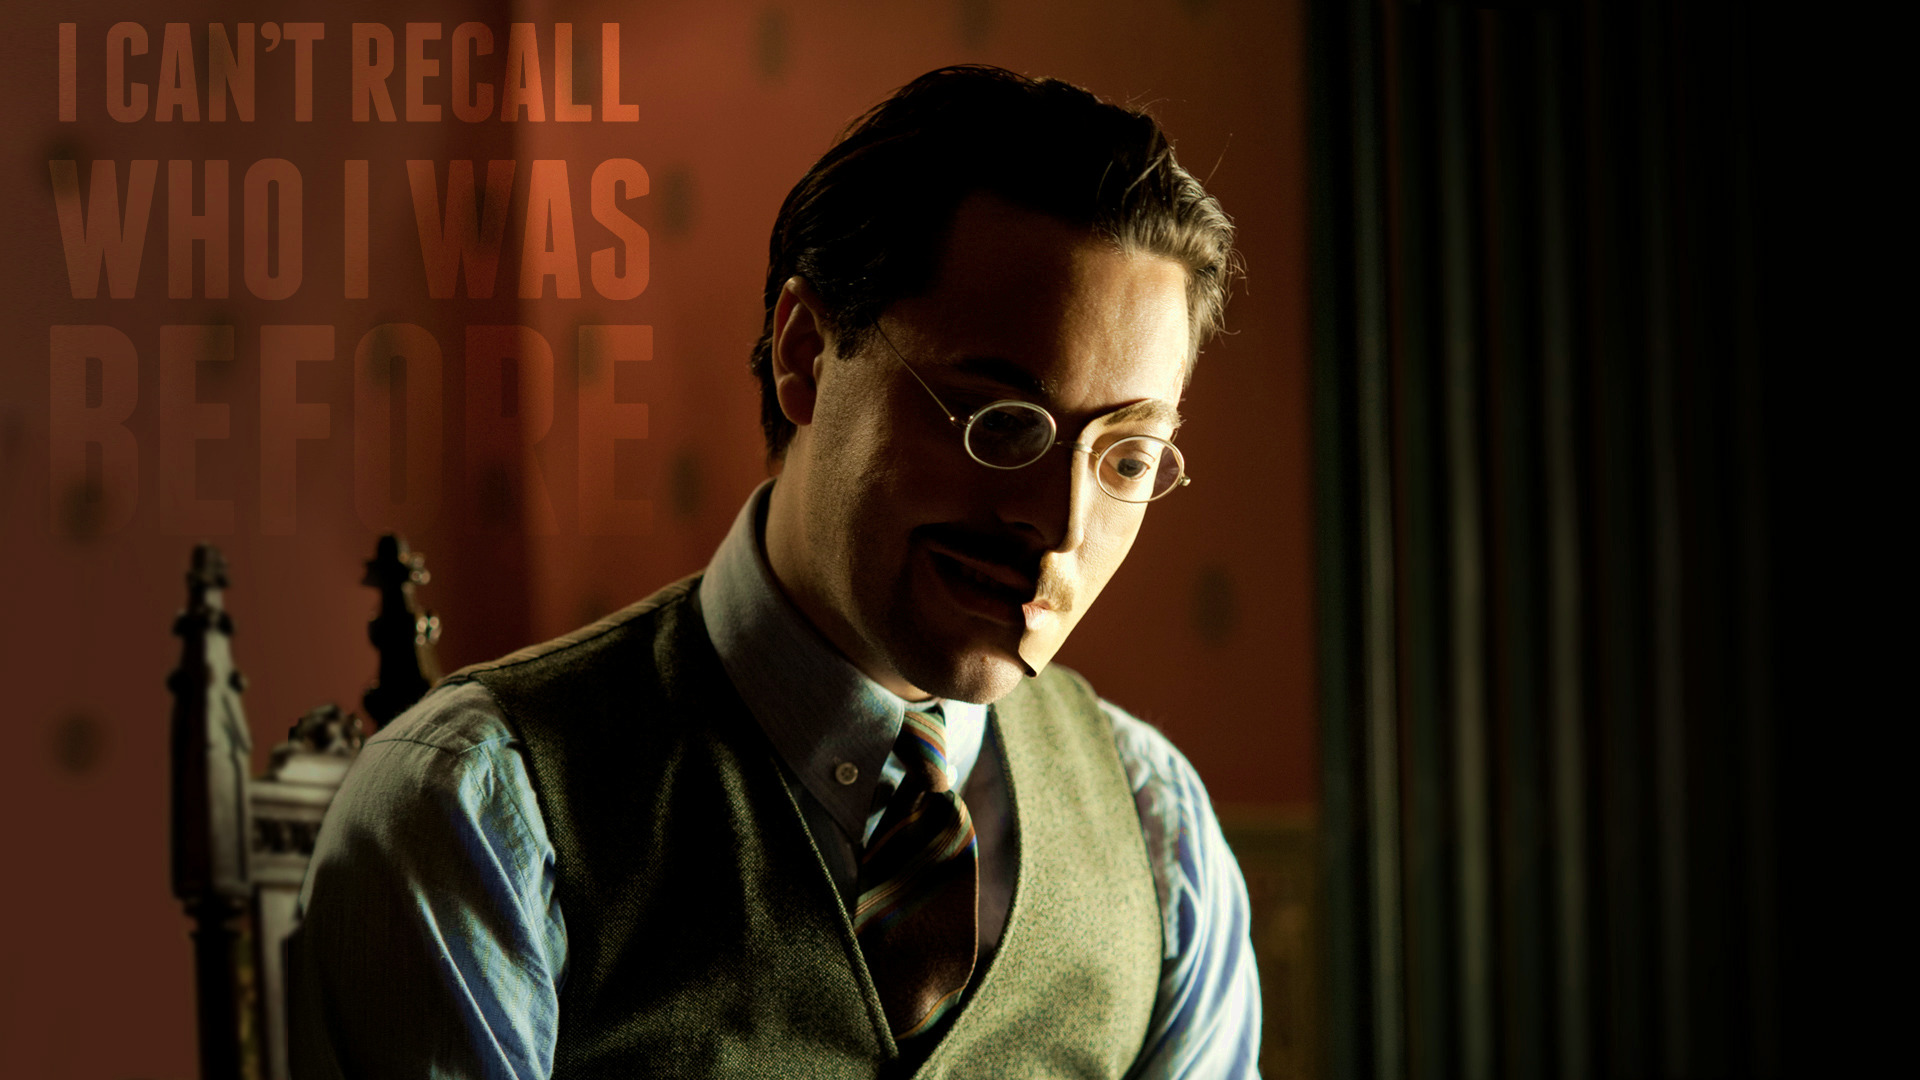 Car 5760x1080 Wallpaper Boardwalk Empire Richard Harrow Jack Huston Quote